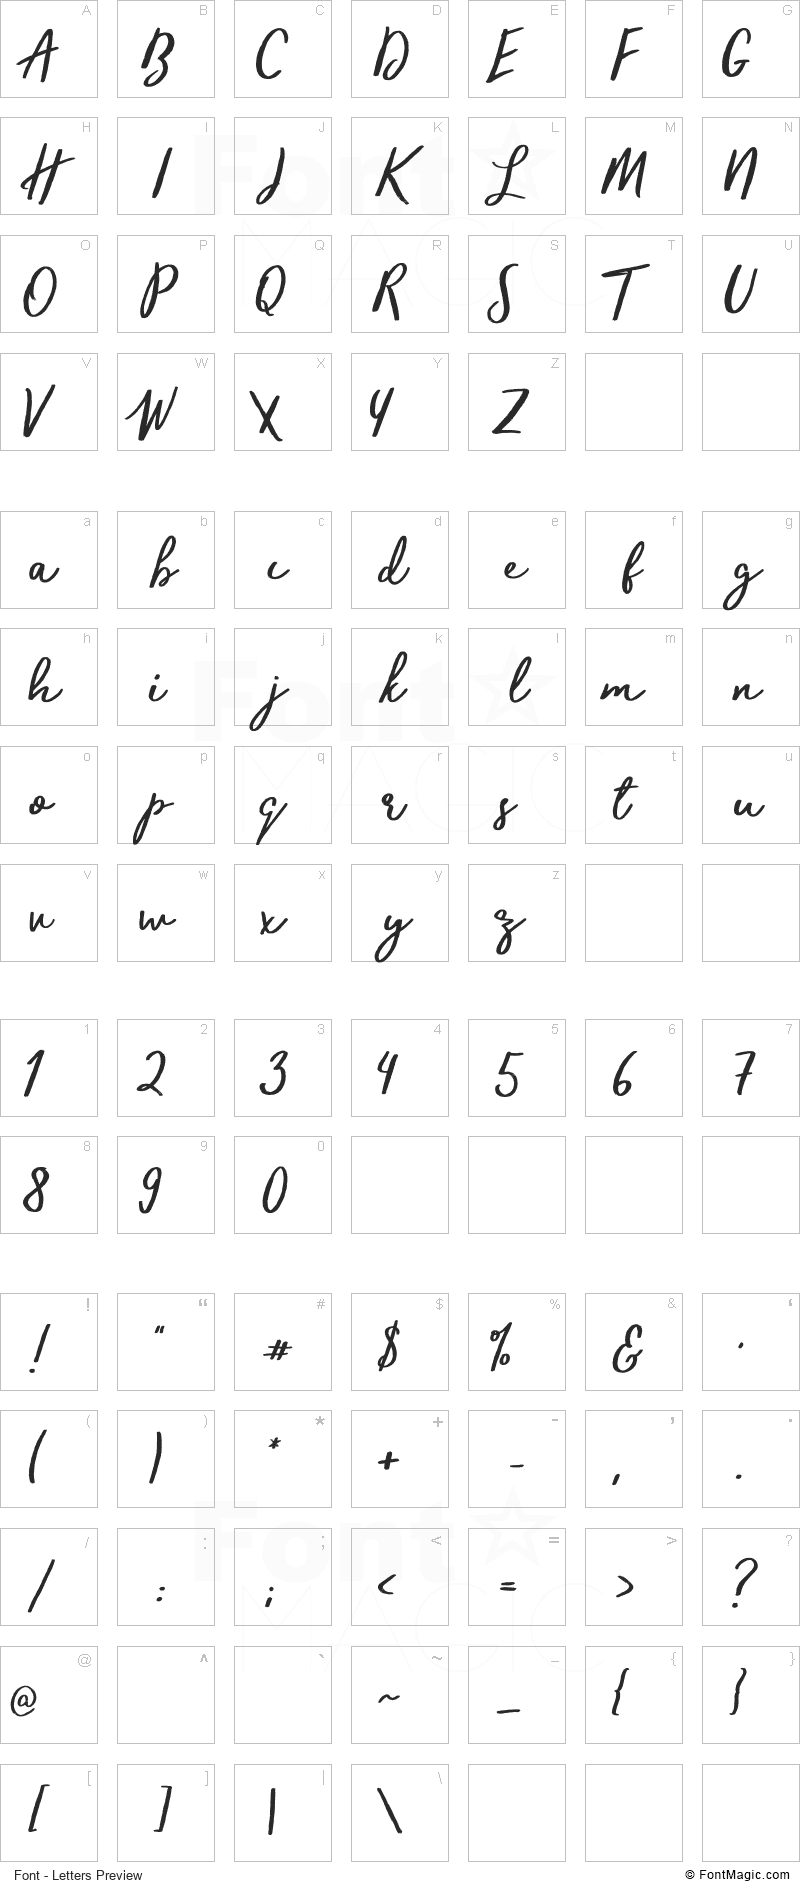 Trendsetter Font - All Latters Preview Chart